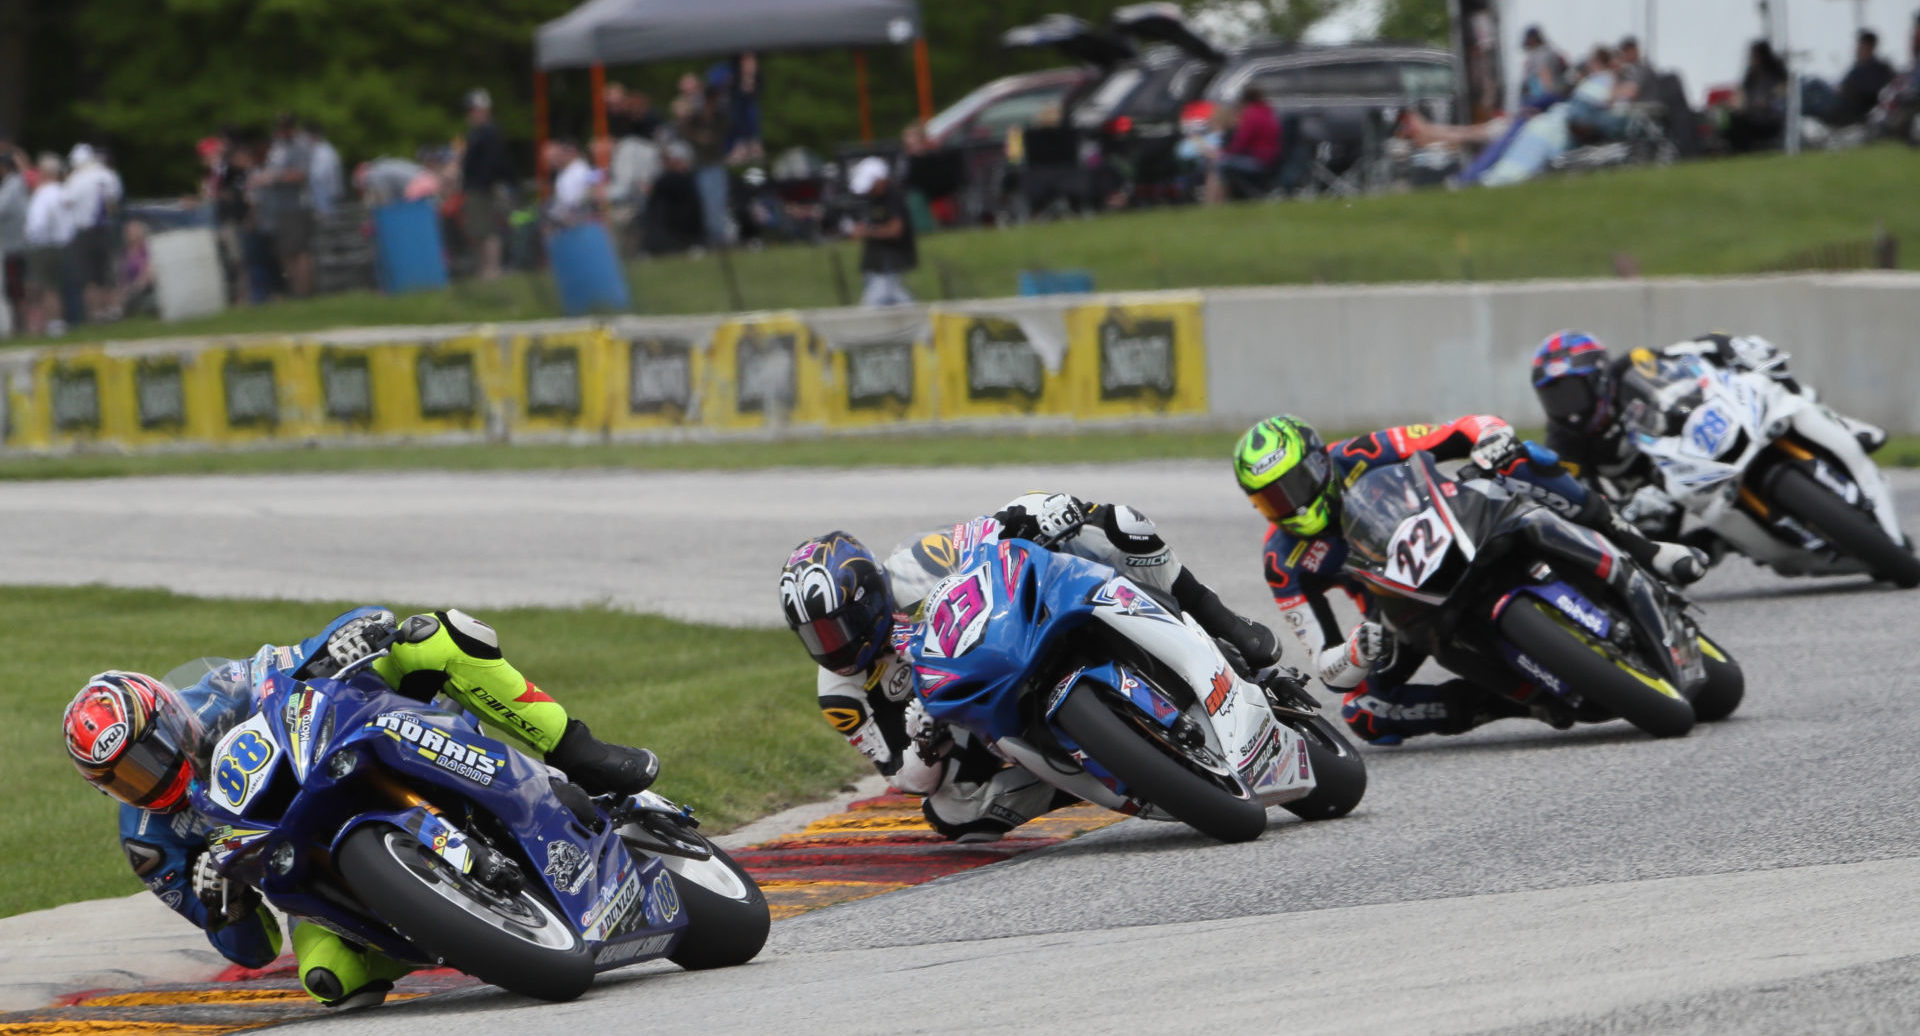 MotoAmerica Supersport competitors Benjamin Smith (88), Lucas Silva (23), Ashton Yates (22), and Cory Ventura (28) racing in front of fans at Road America in 2019. Photo by Brian J. Nelson.